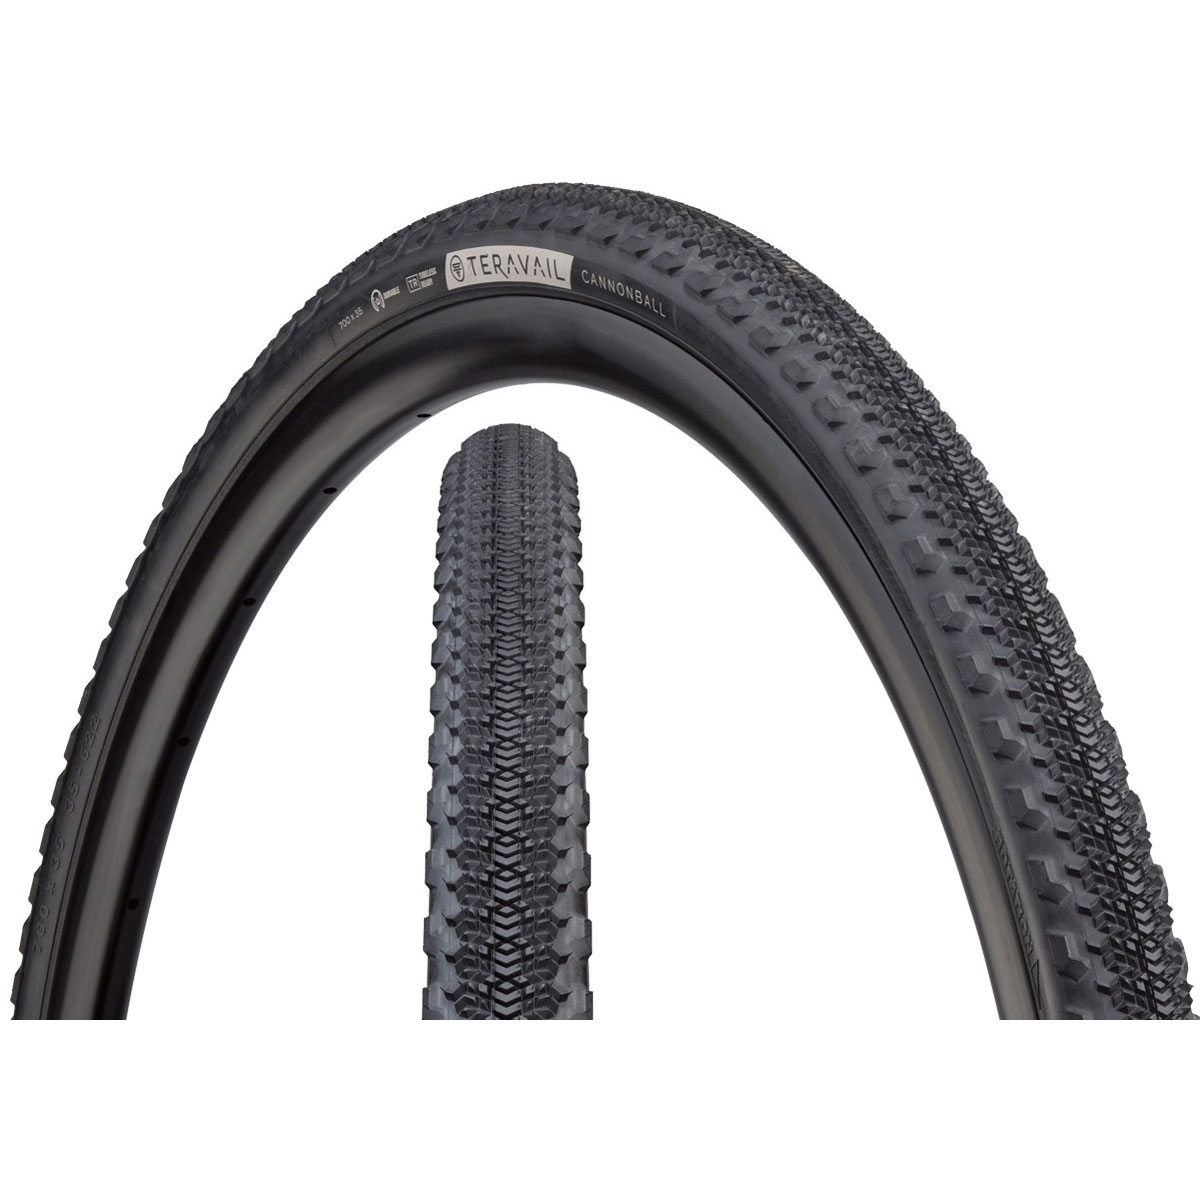 Teravail Cannonball tyres